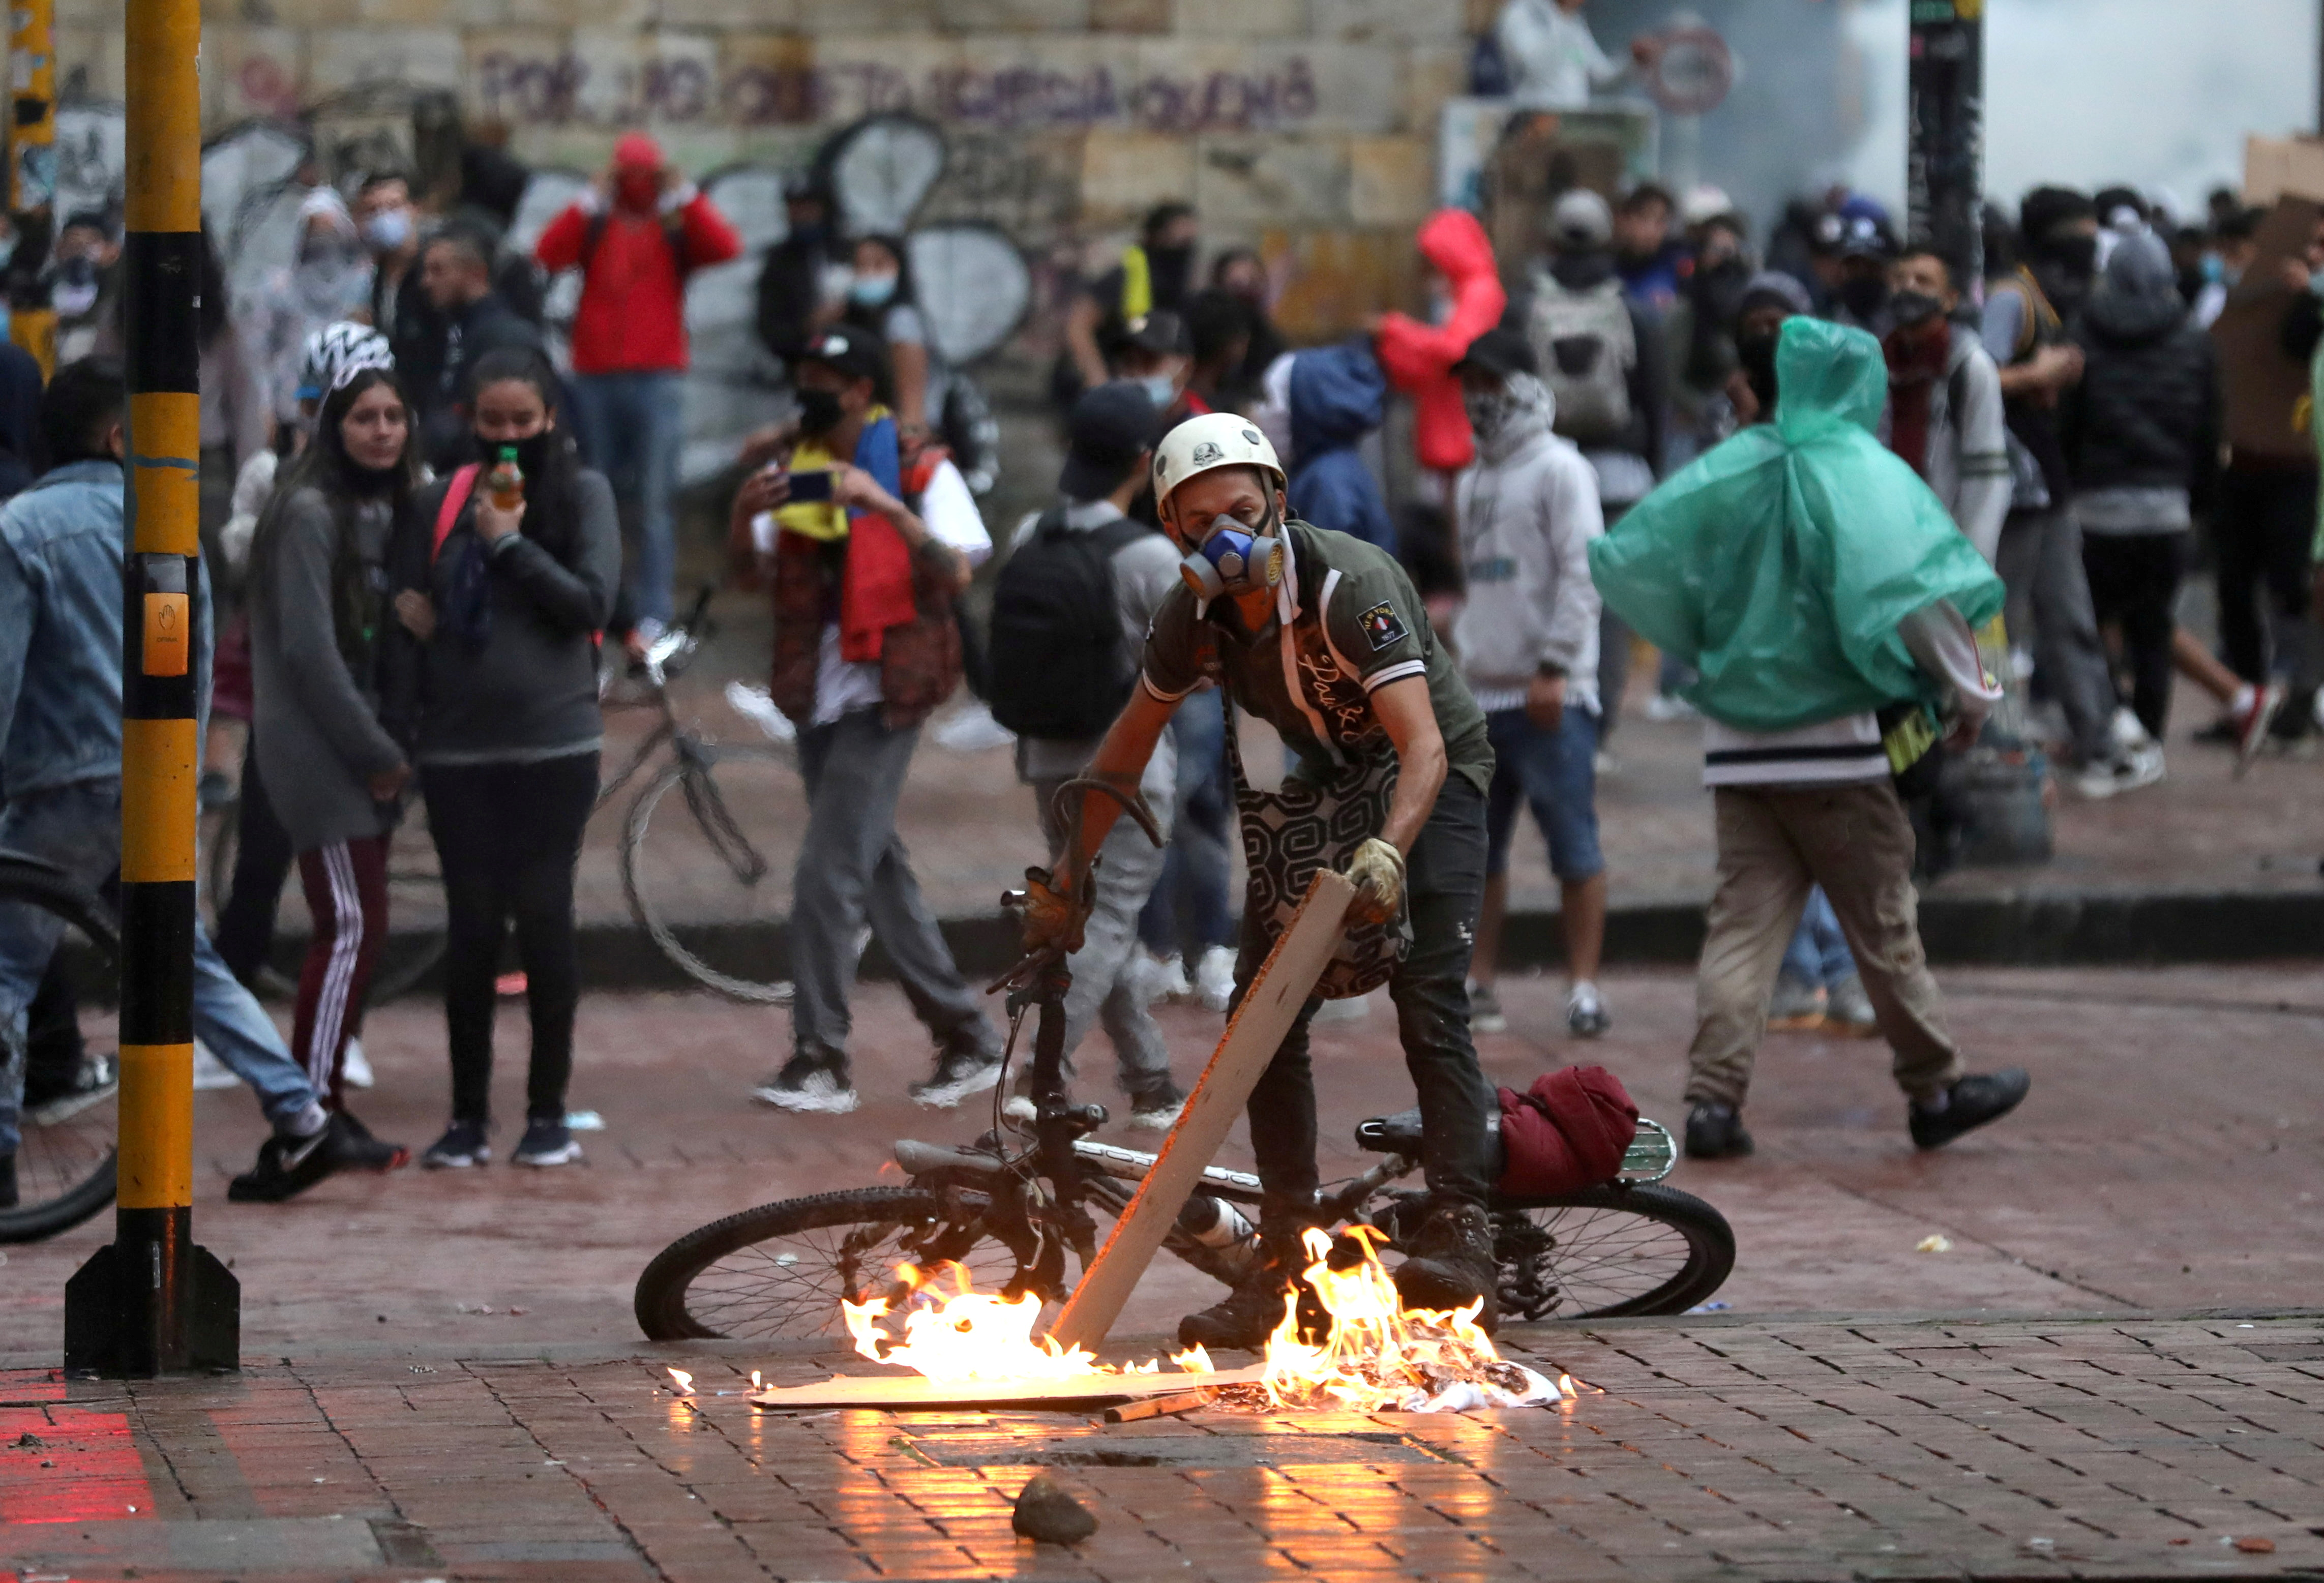 A protester stokes a fire during a protest against the tax reform of President Ivan Duque's government in Bogota, Colombia, May 1, 2021. REUTERS/Luisa Gonzalez/